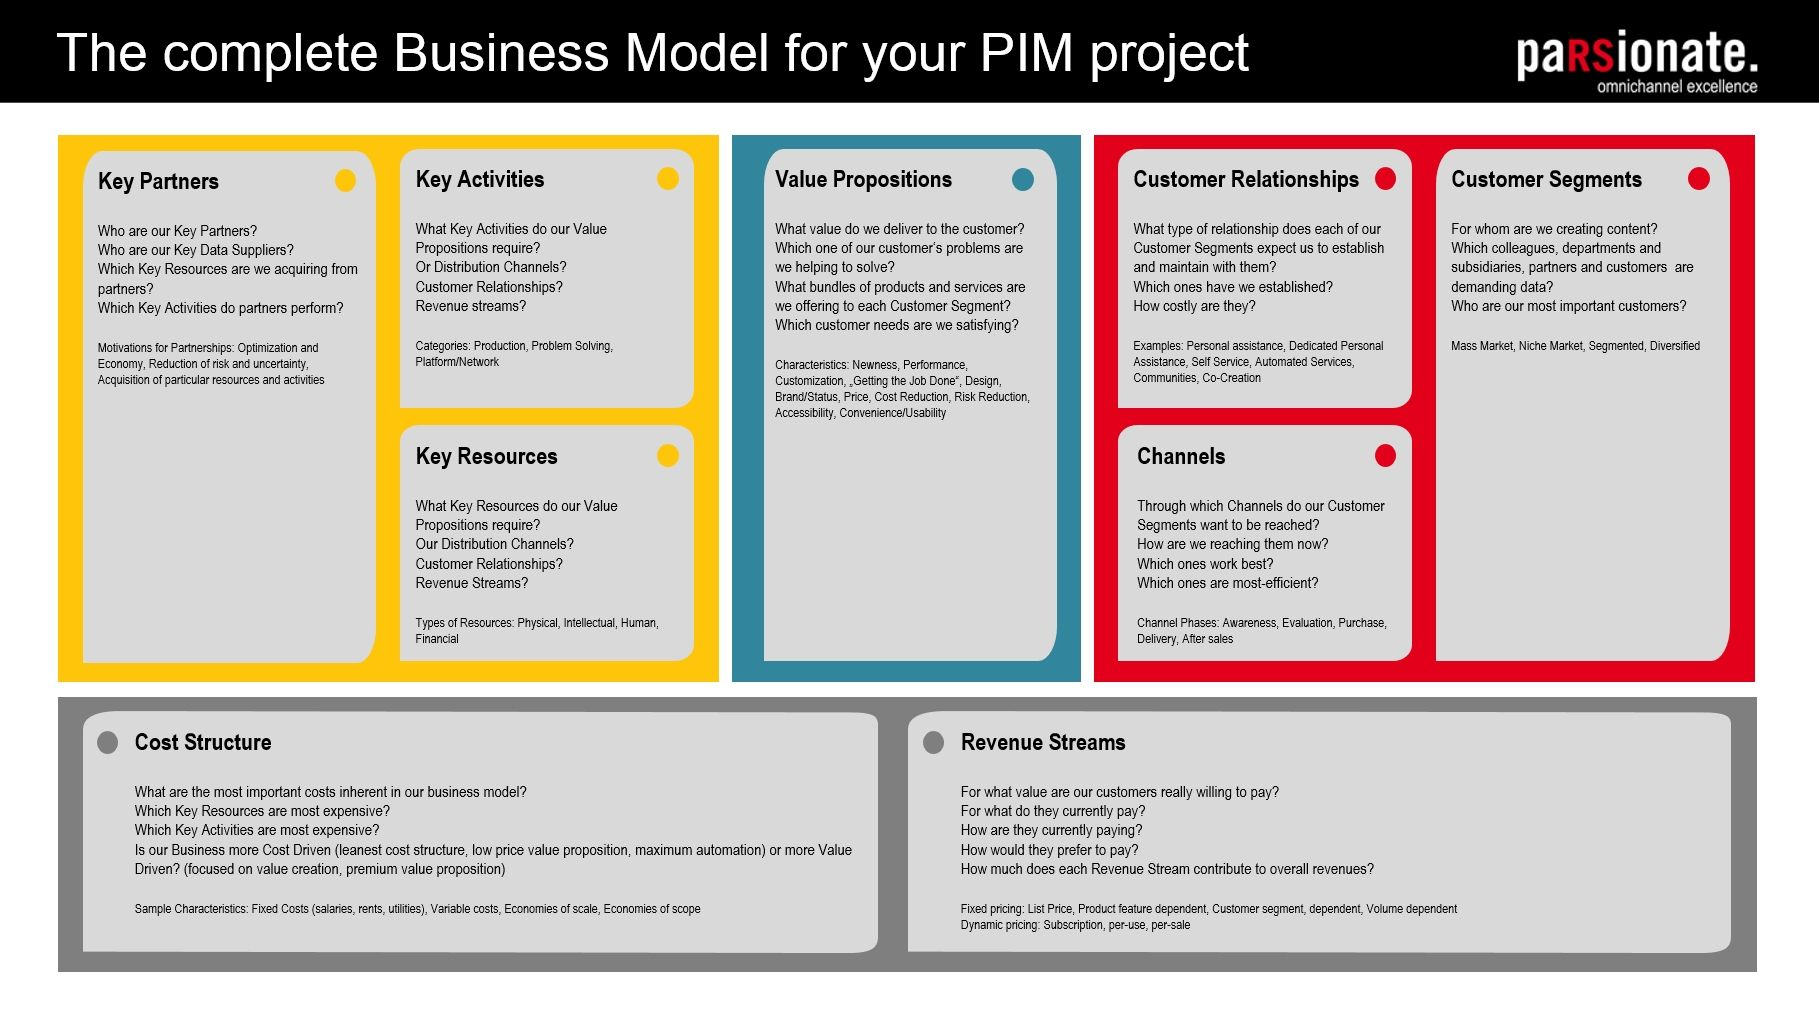 the business model canvas Google Search